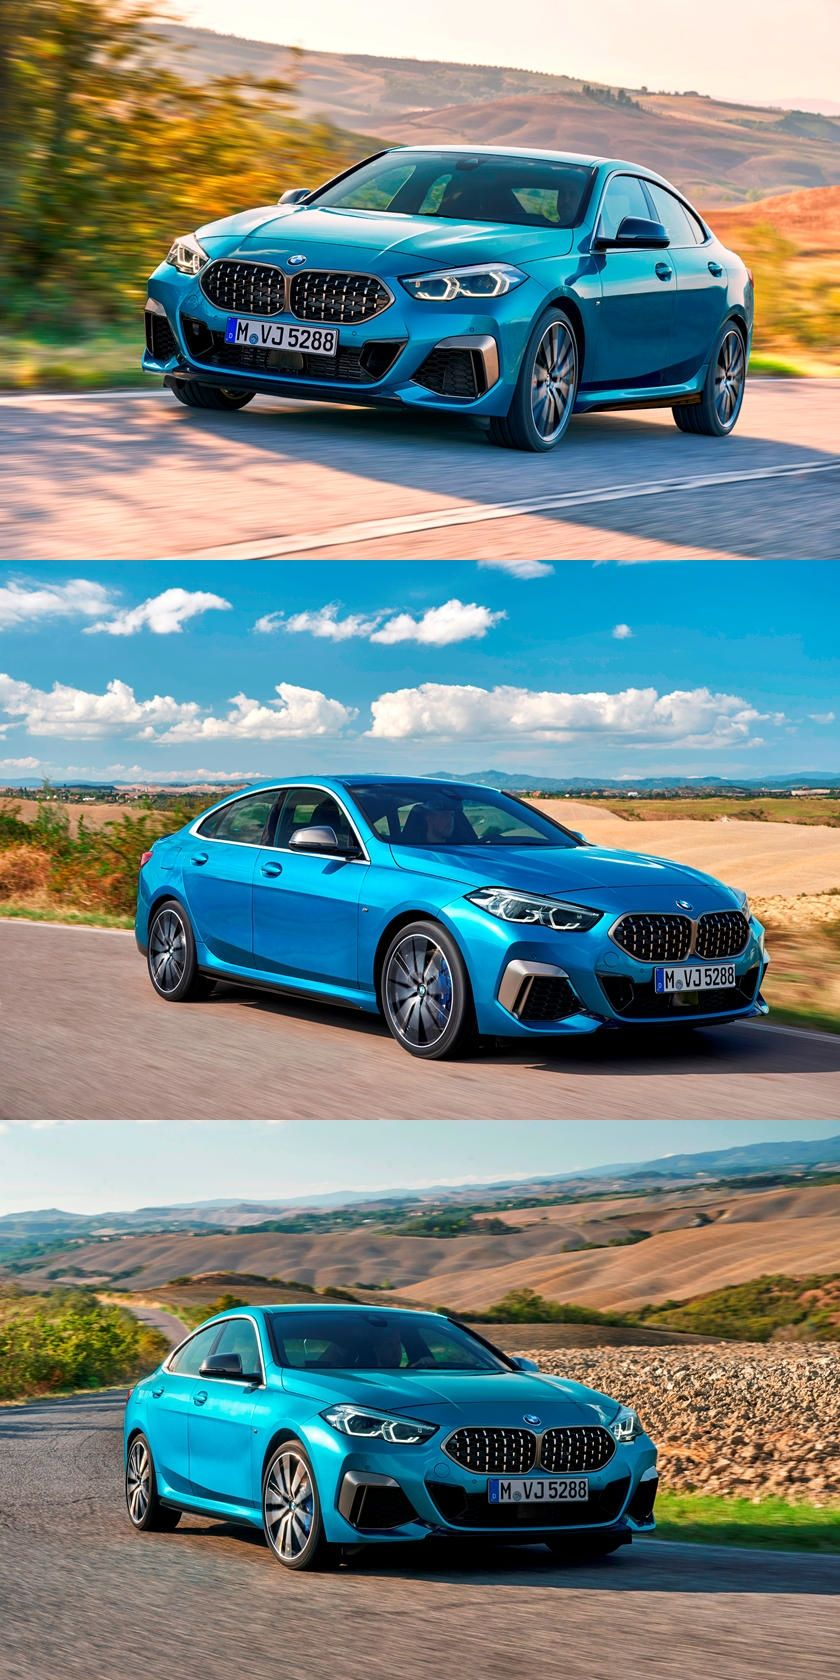 2020 Bmw 4 Series Gran Coupe Rumor Price Concept 2020 Bmw 4 Series Gran Coupe Will Indication As Very Much As Employing Bmw 4 Series Bmw Bmw 4 Series Coupe